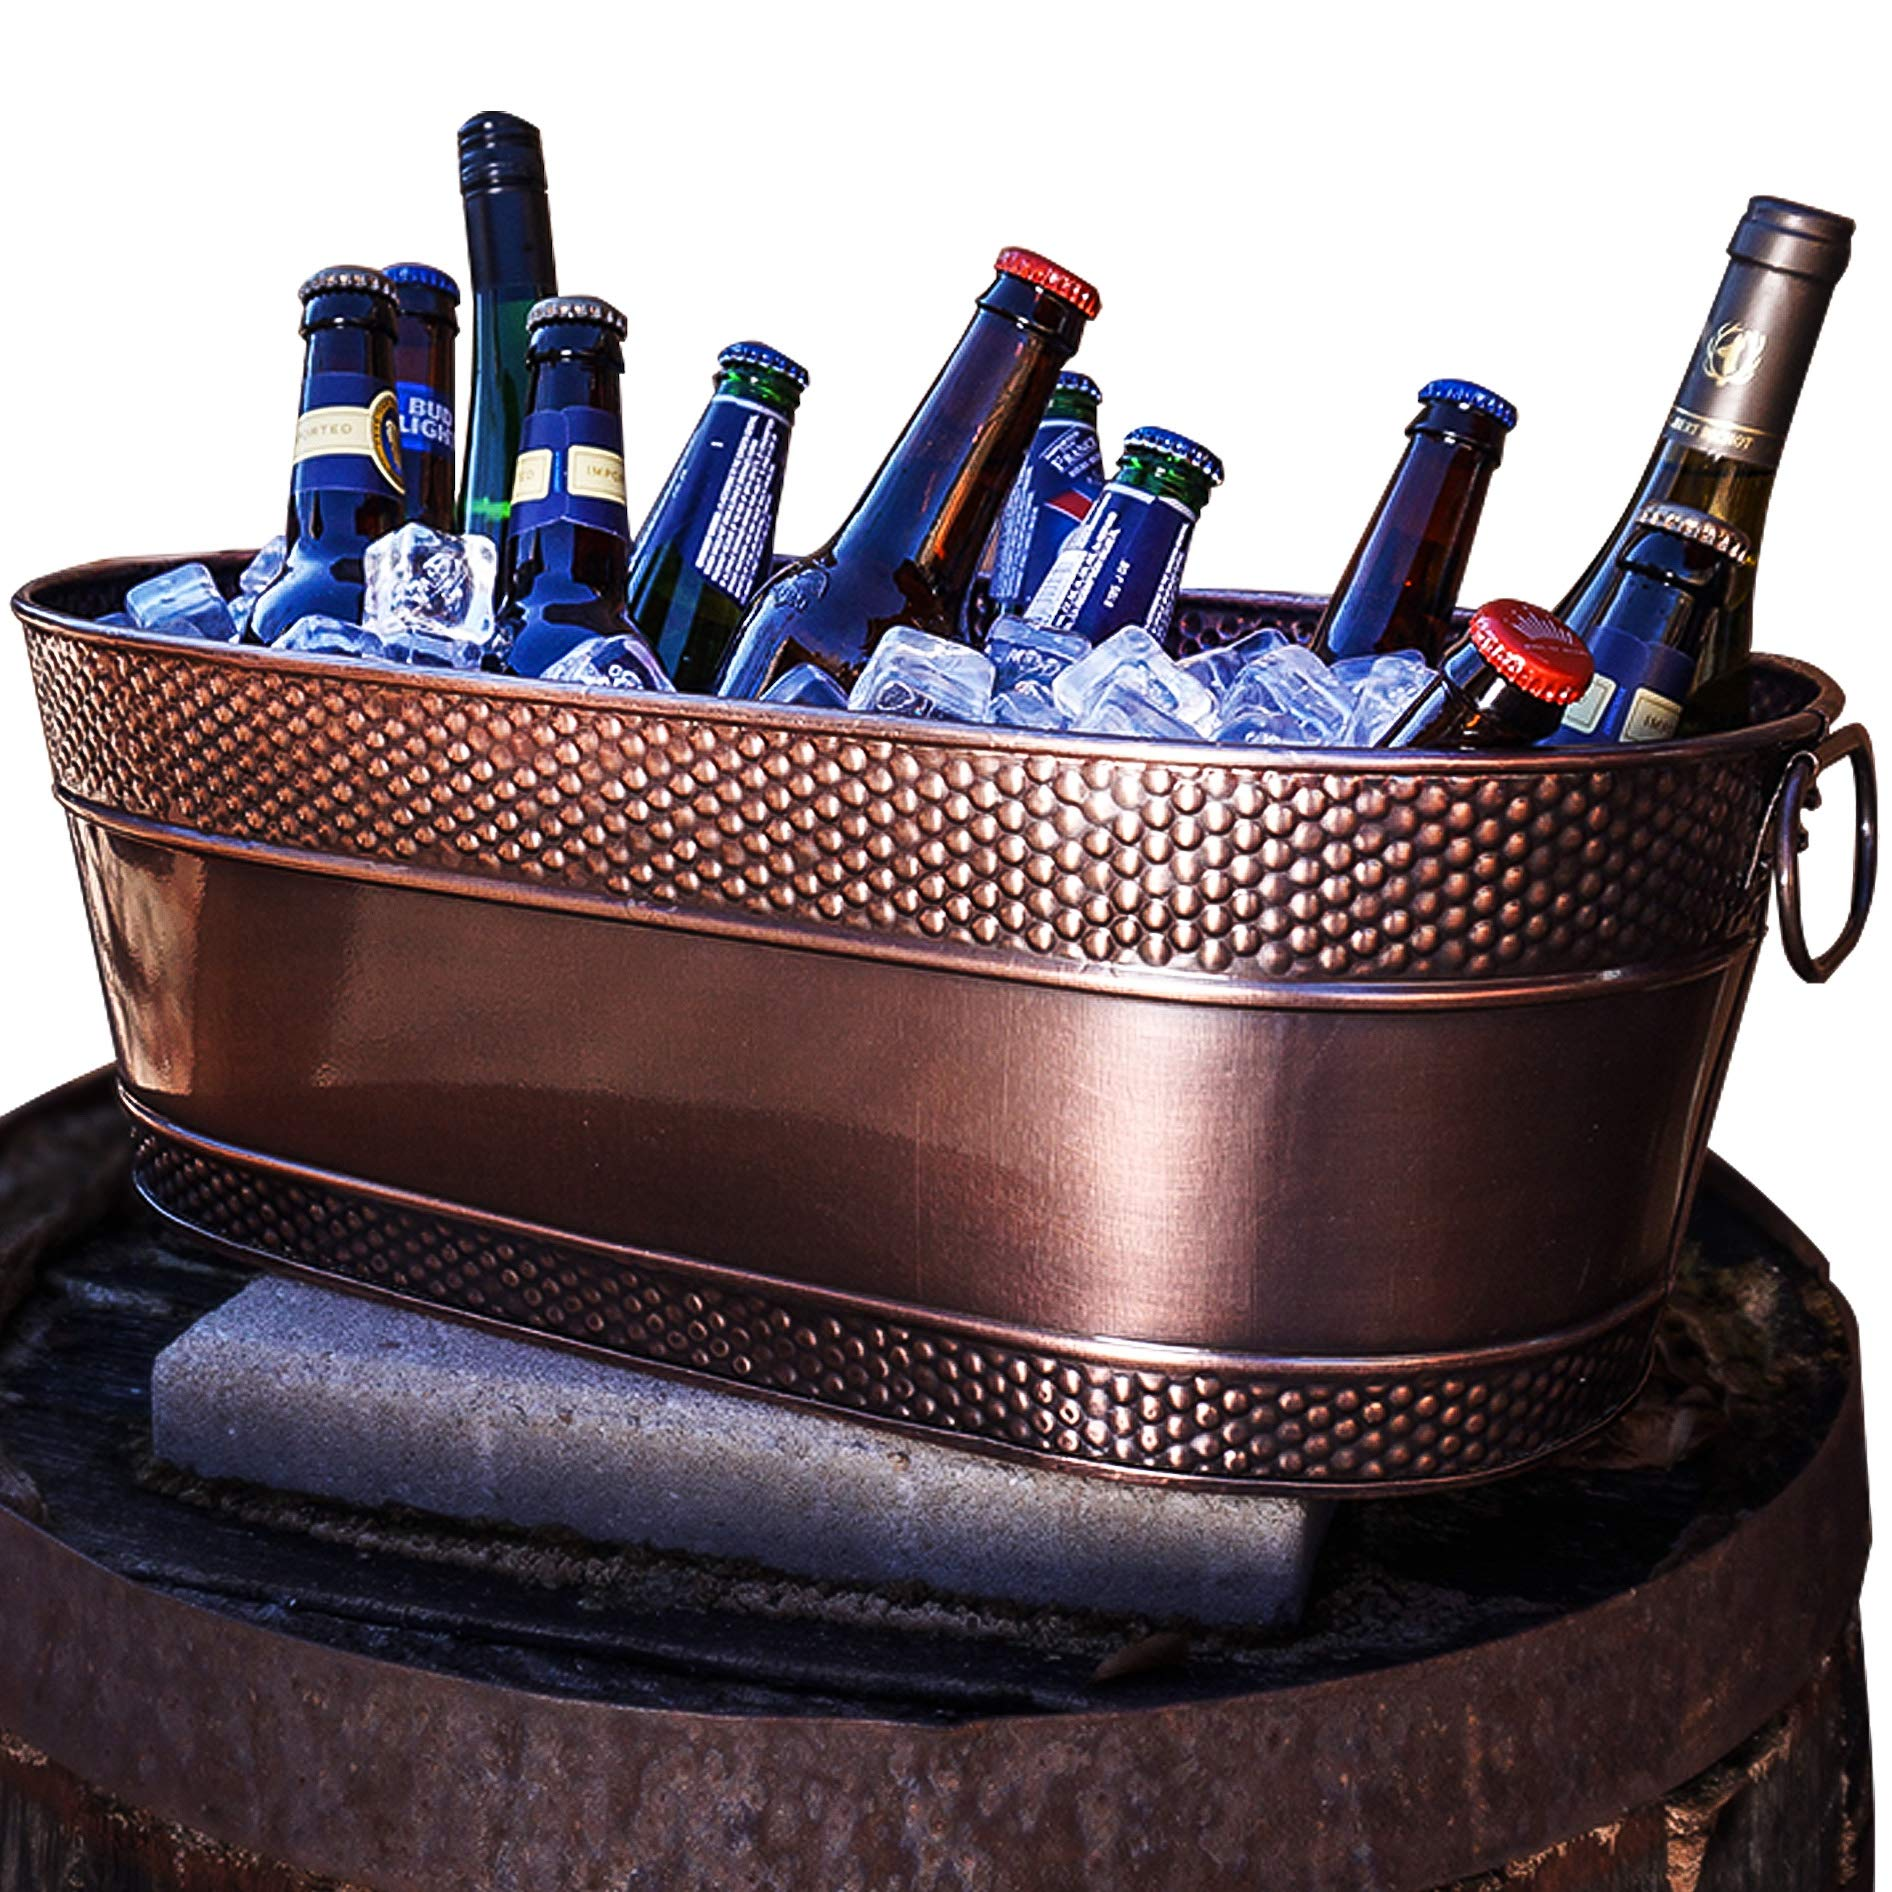 BREKX Colt Copper Finish Galvanized Hammered Beverage Tub - 17 Quart by BREKX